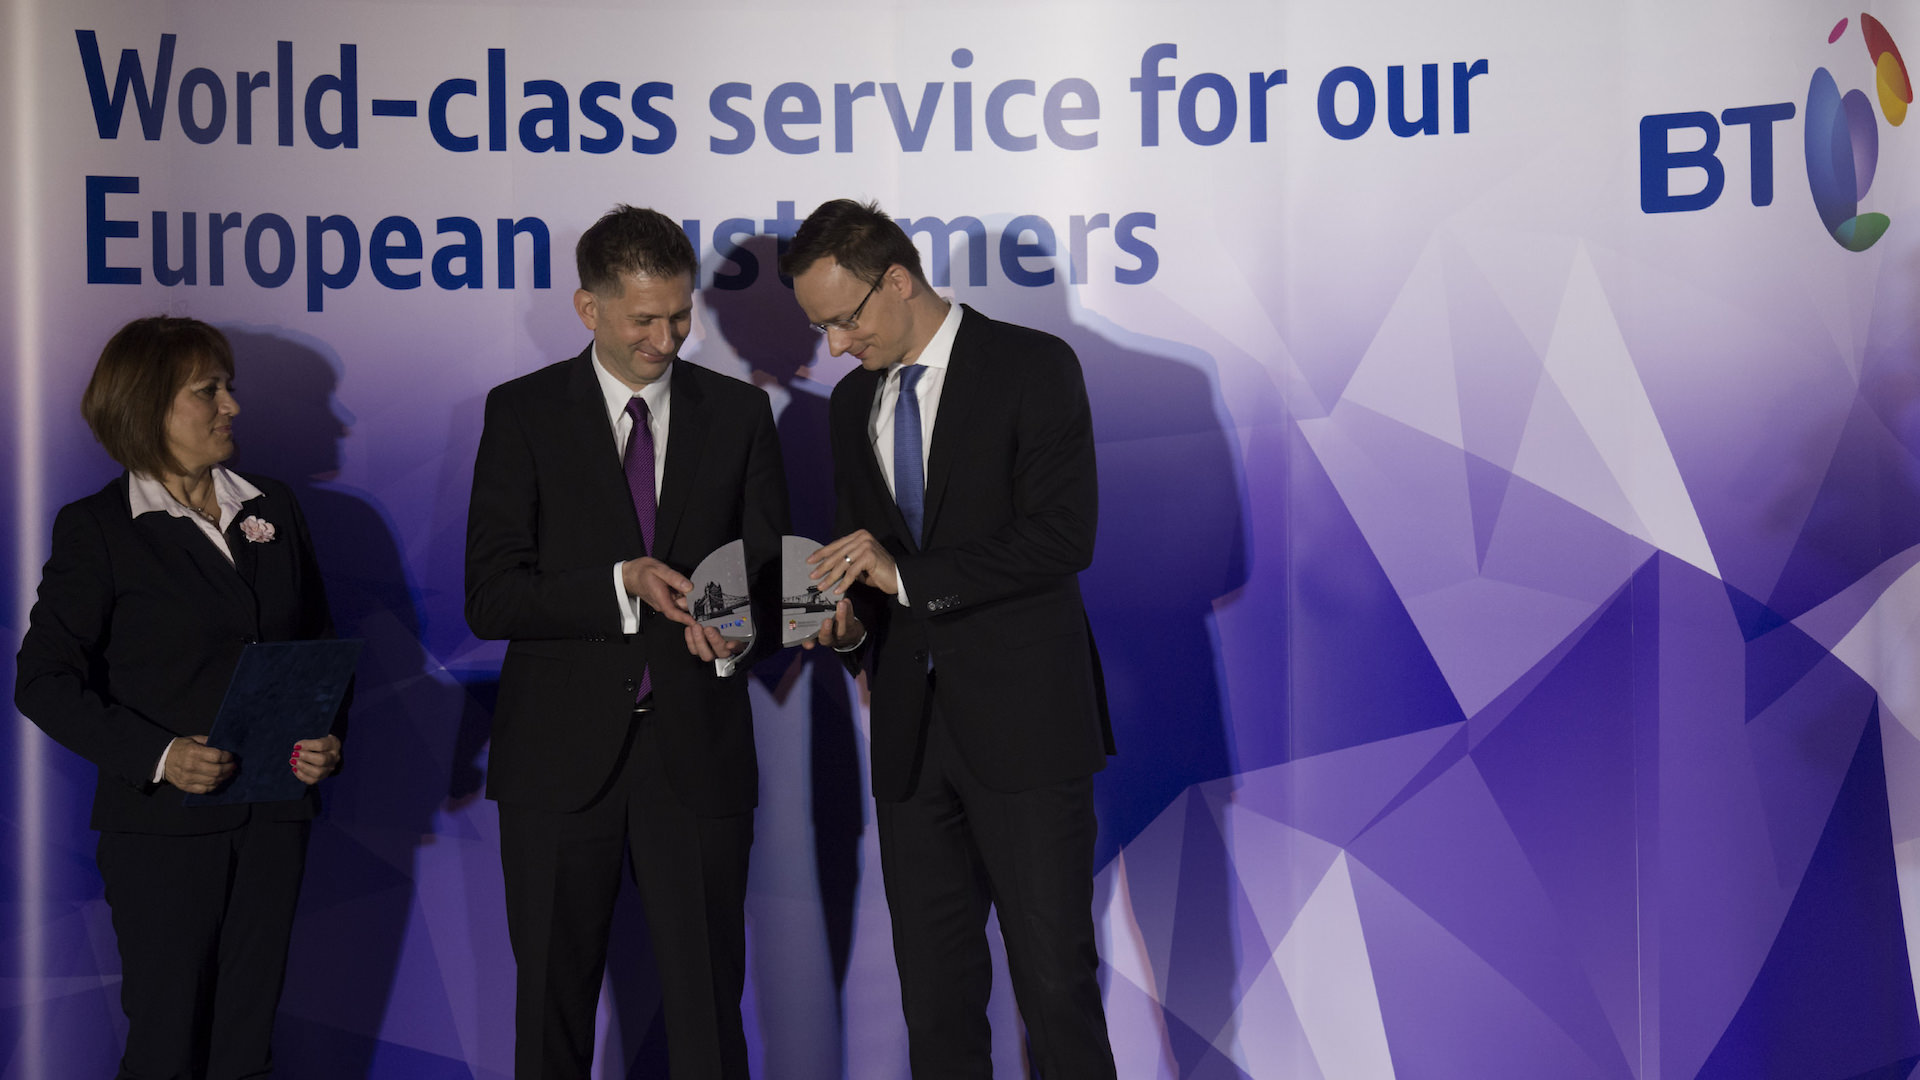 BT's Regional Service Centre received Centre of Excellence award 2015 the best services centre in Hungary, Szijjárto Péter KKM Szabó Zoltán Grócz Mária BT